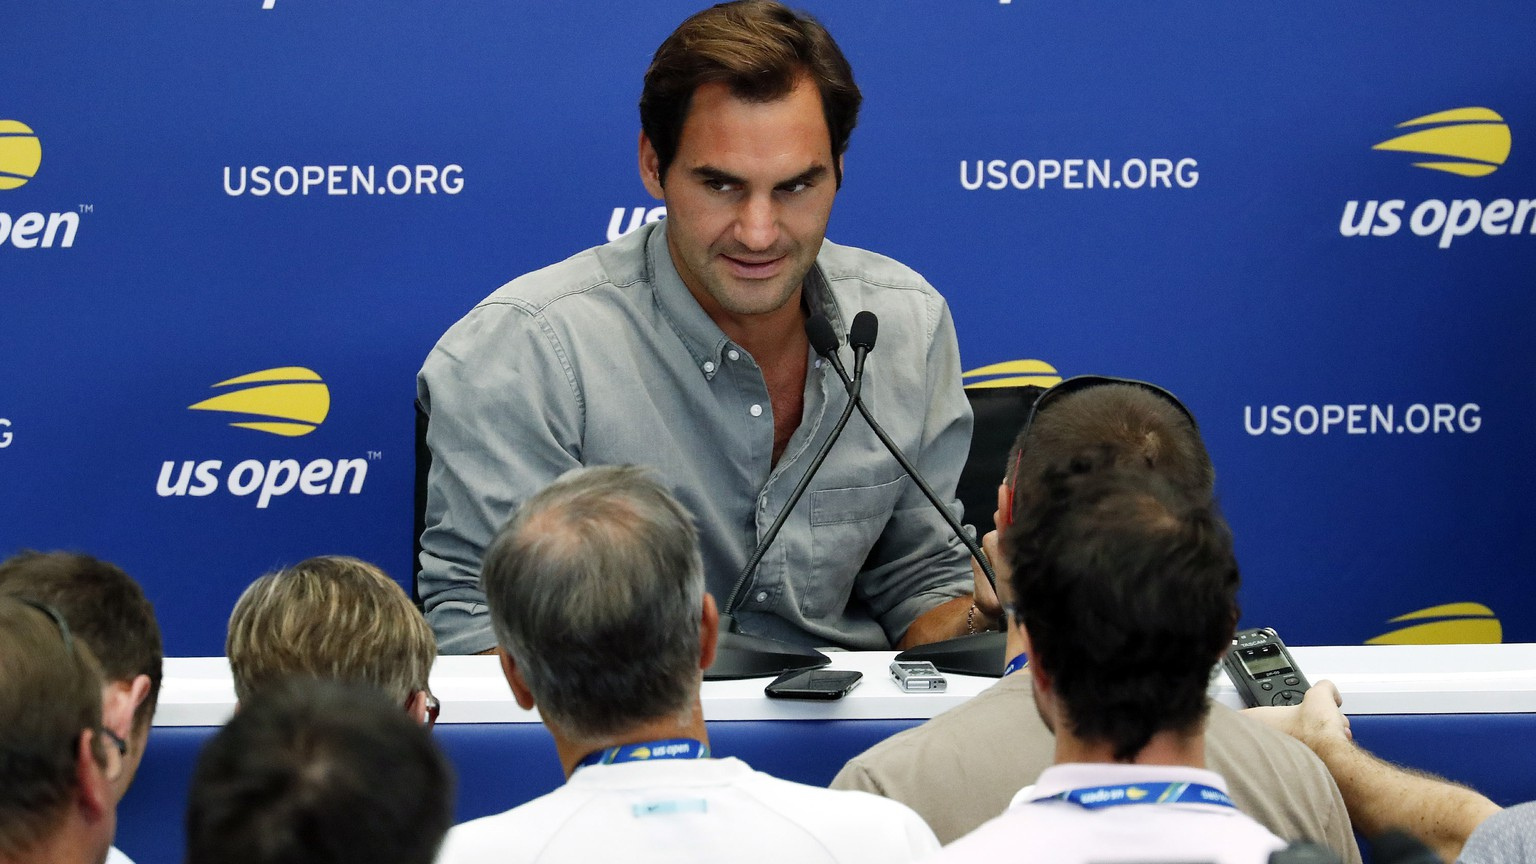 epa06969385 Swiss tennis player Roger Federer (C) addresses the media during media day inside Armstrong stadium at the 2018 US Open Tennis Championships at the USTA National Tennis Center in Flushing Meadows, New York, USA, 24 August 2018.  EPA/JASON SZENES